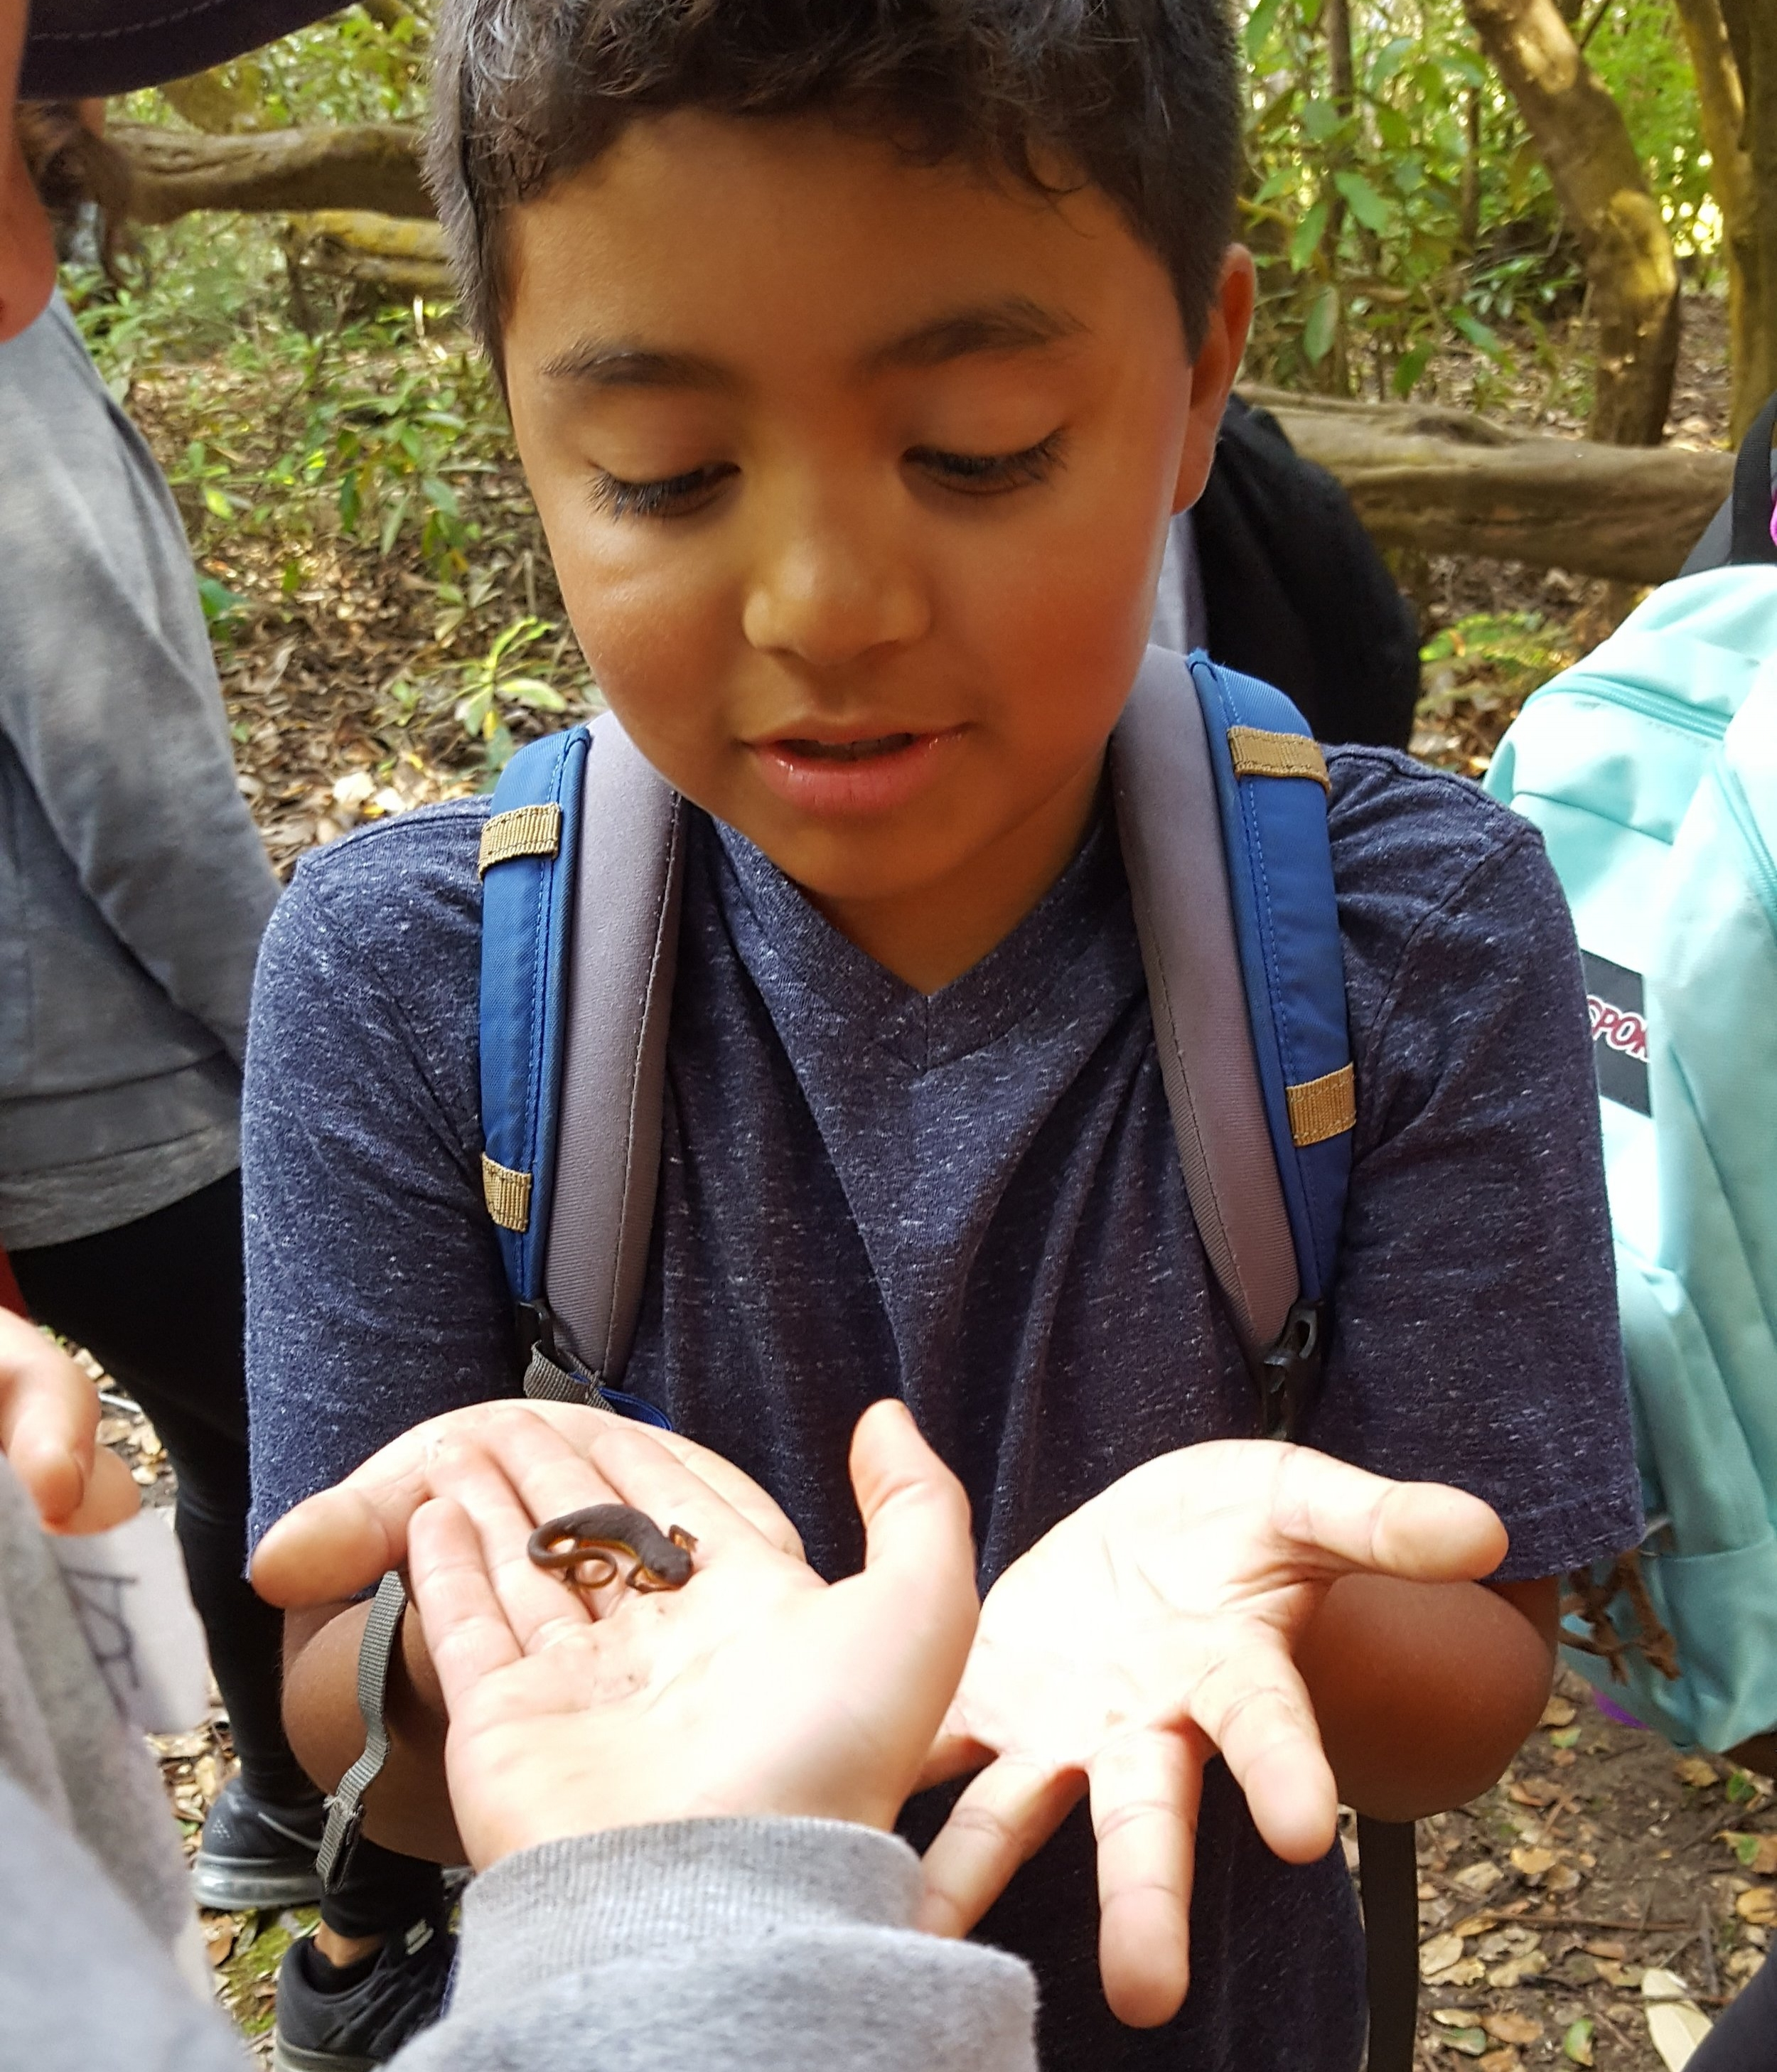 Watsonville Charter School students take turns passing around a baby salamander found during WOLF School's Salamander Study at Camp Monte Toyon in Aptos, CA.